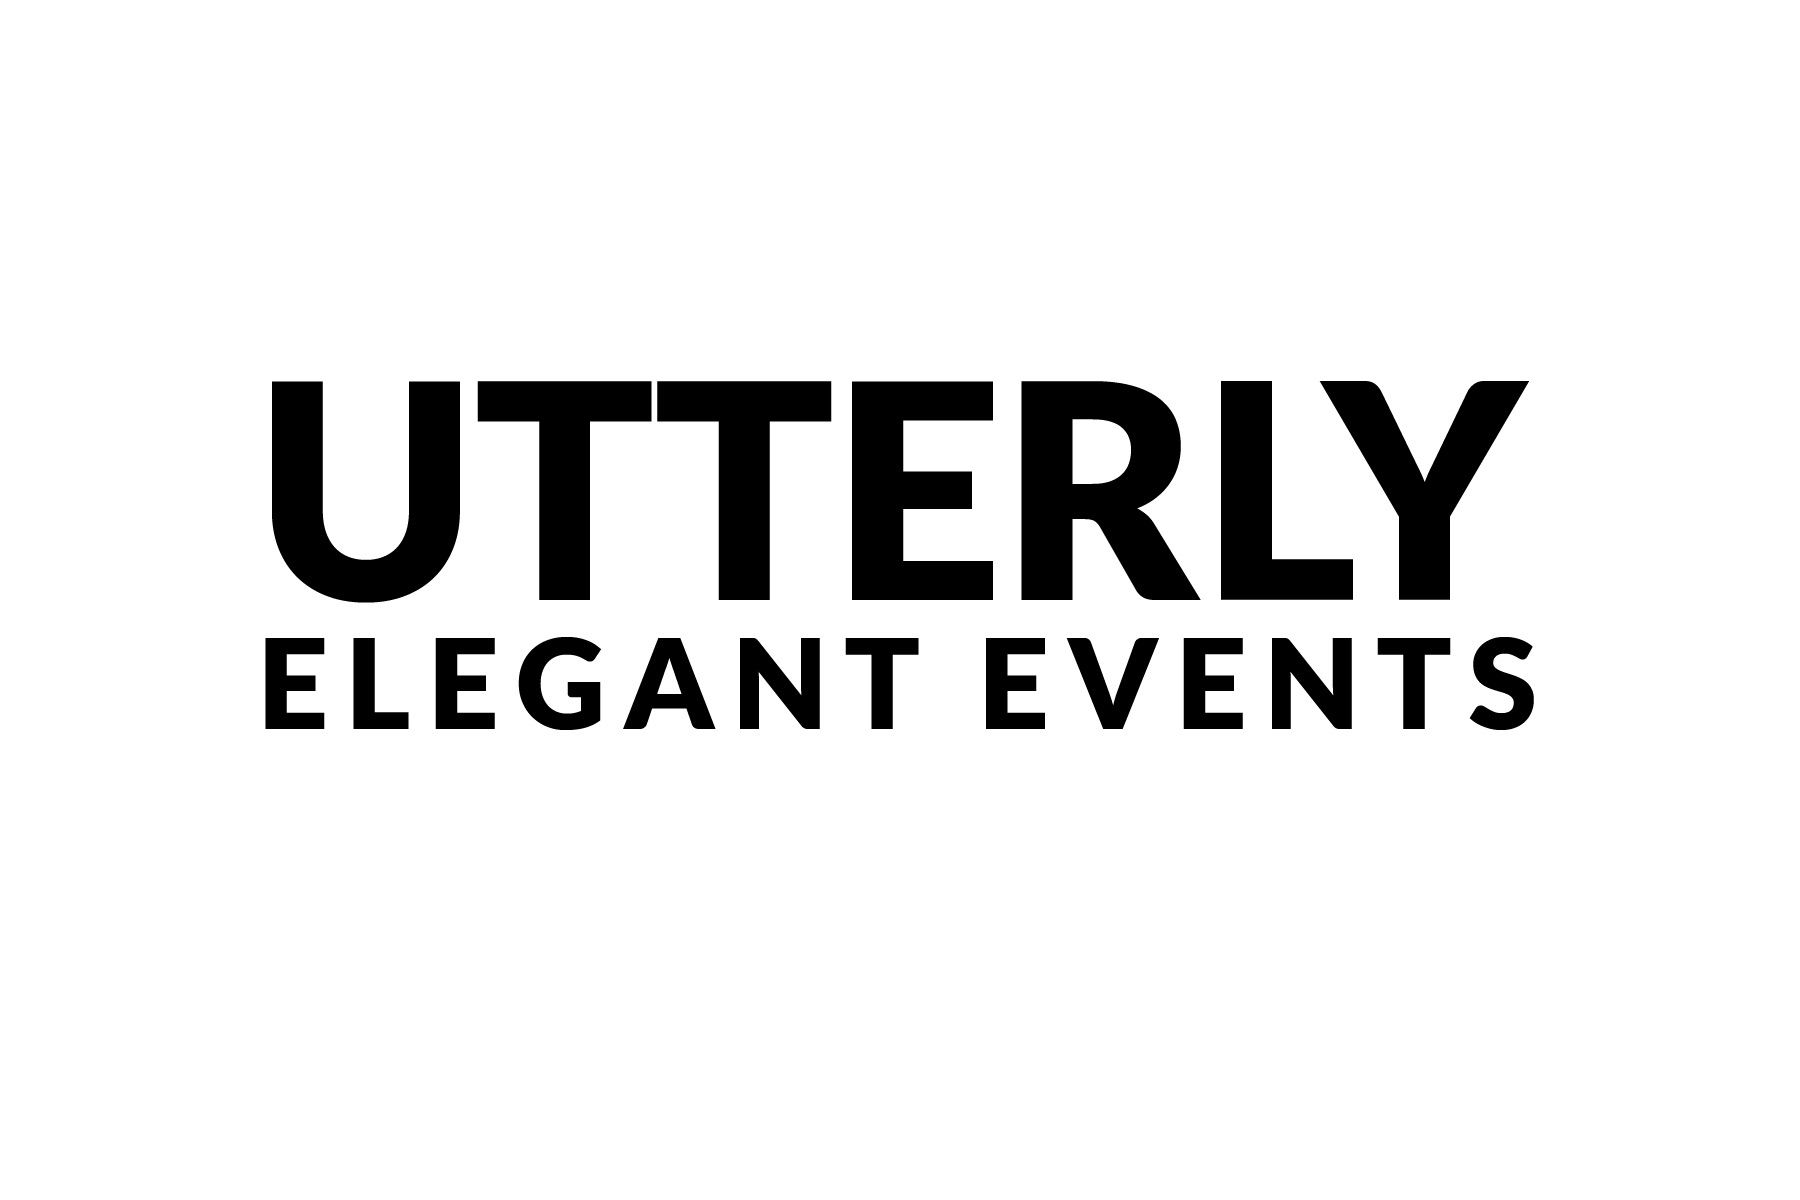 Utterly Elegant Events